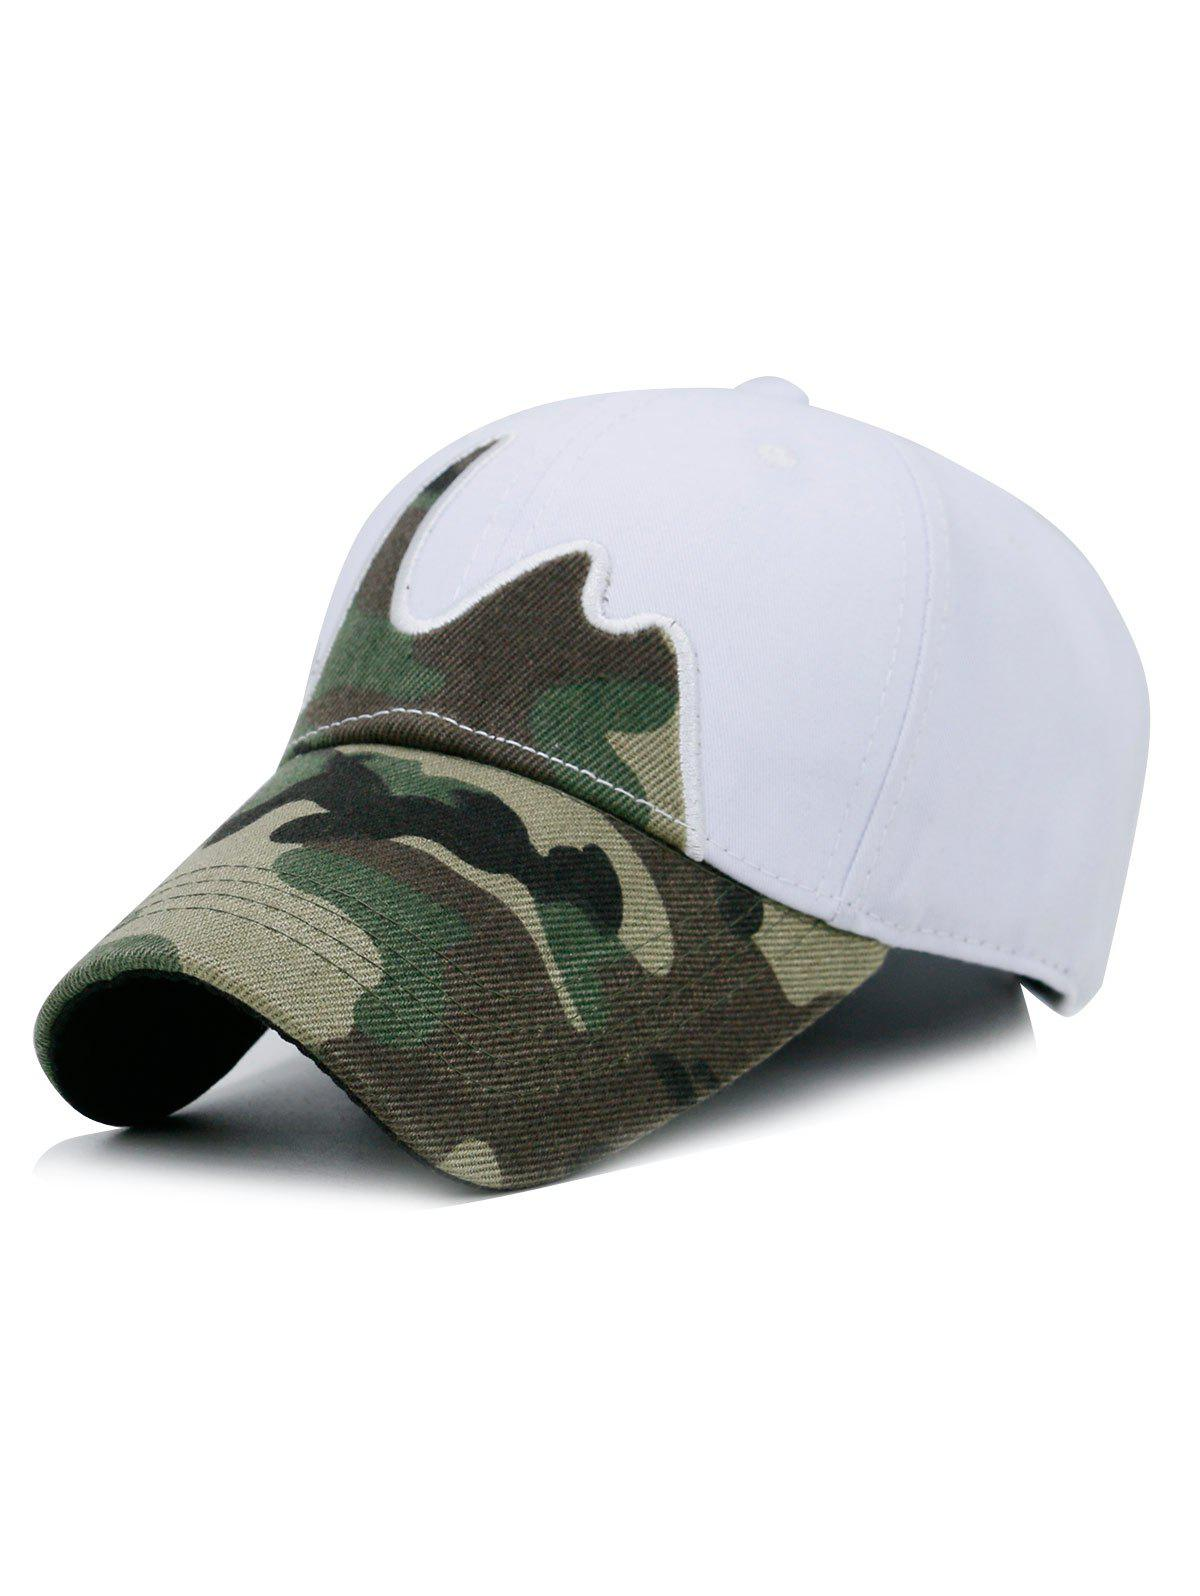 Buy Unique Line Embroidery Camouflage Baseball Hat